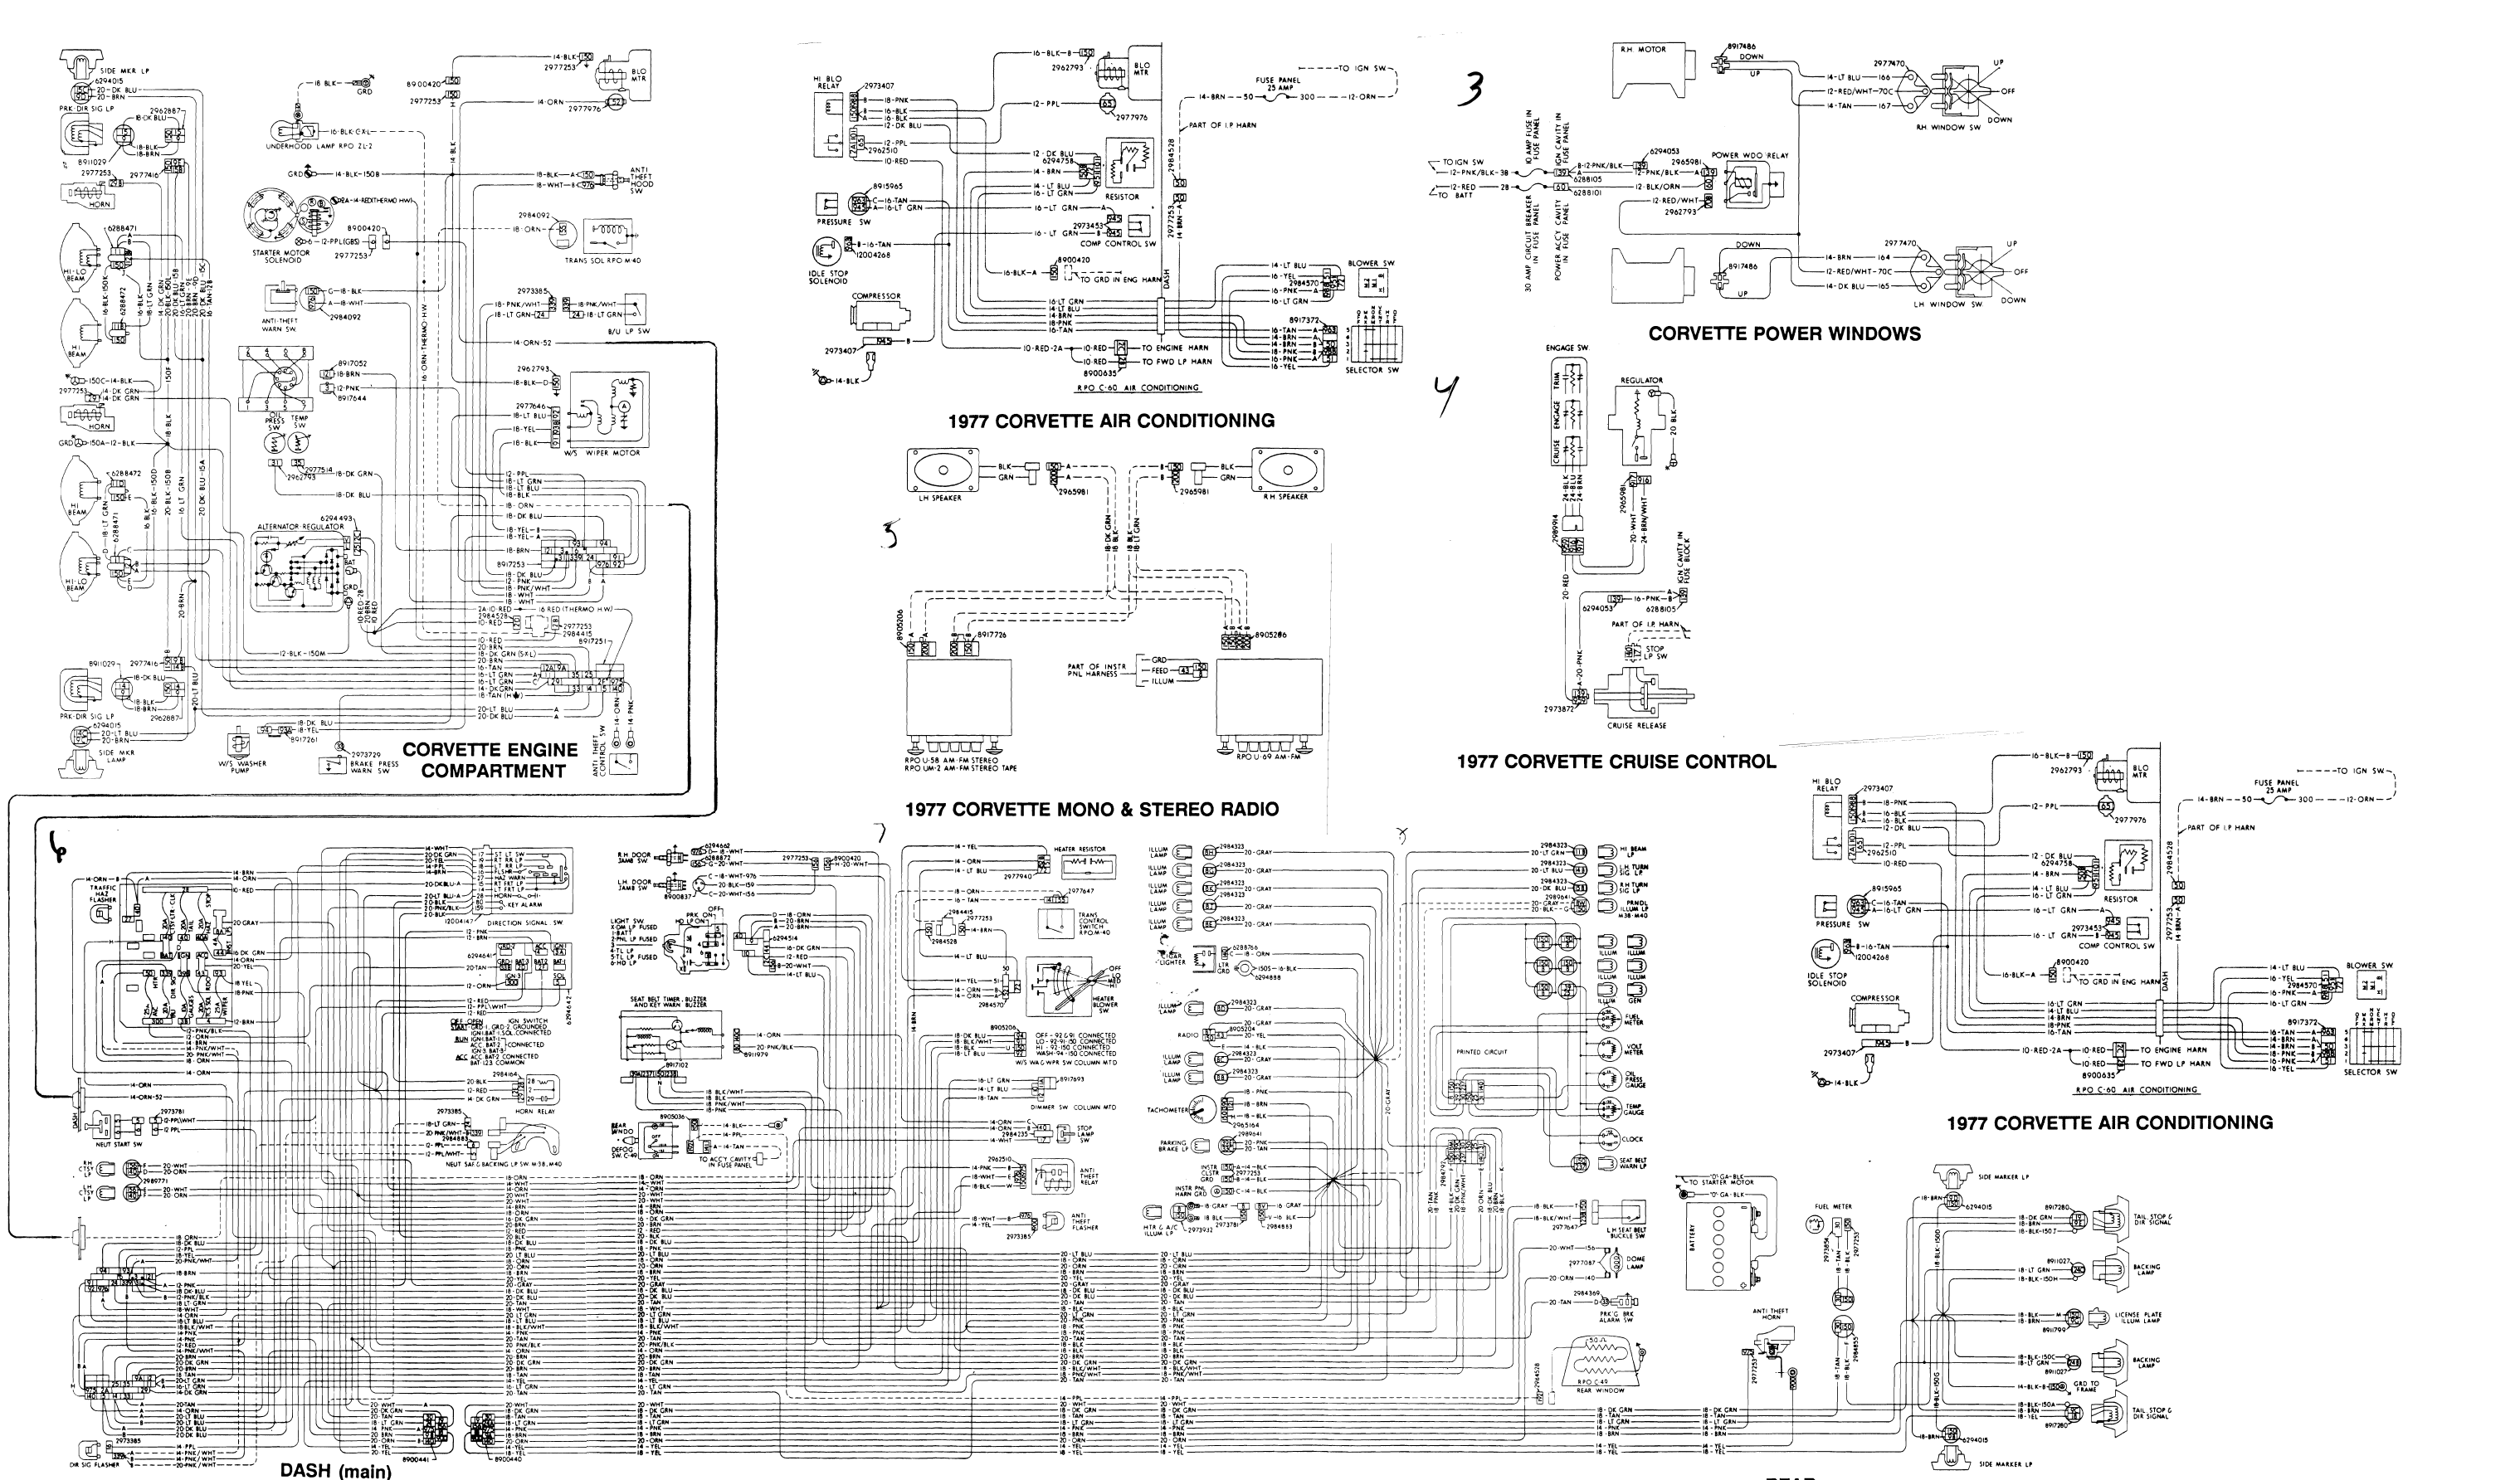 1974 corvette tracer wiring diagram tracer schematic willcox rh repairs willcoxcorvette com 81 Corvette Wiring Diagram 67 Corvette Wiring Diagram